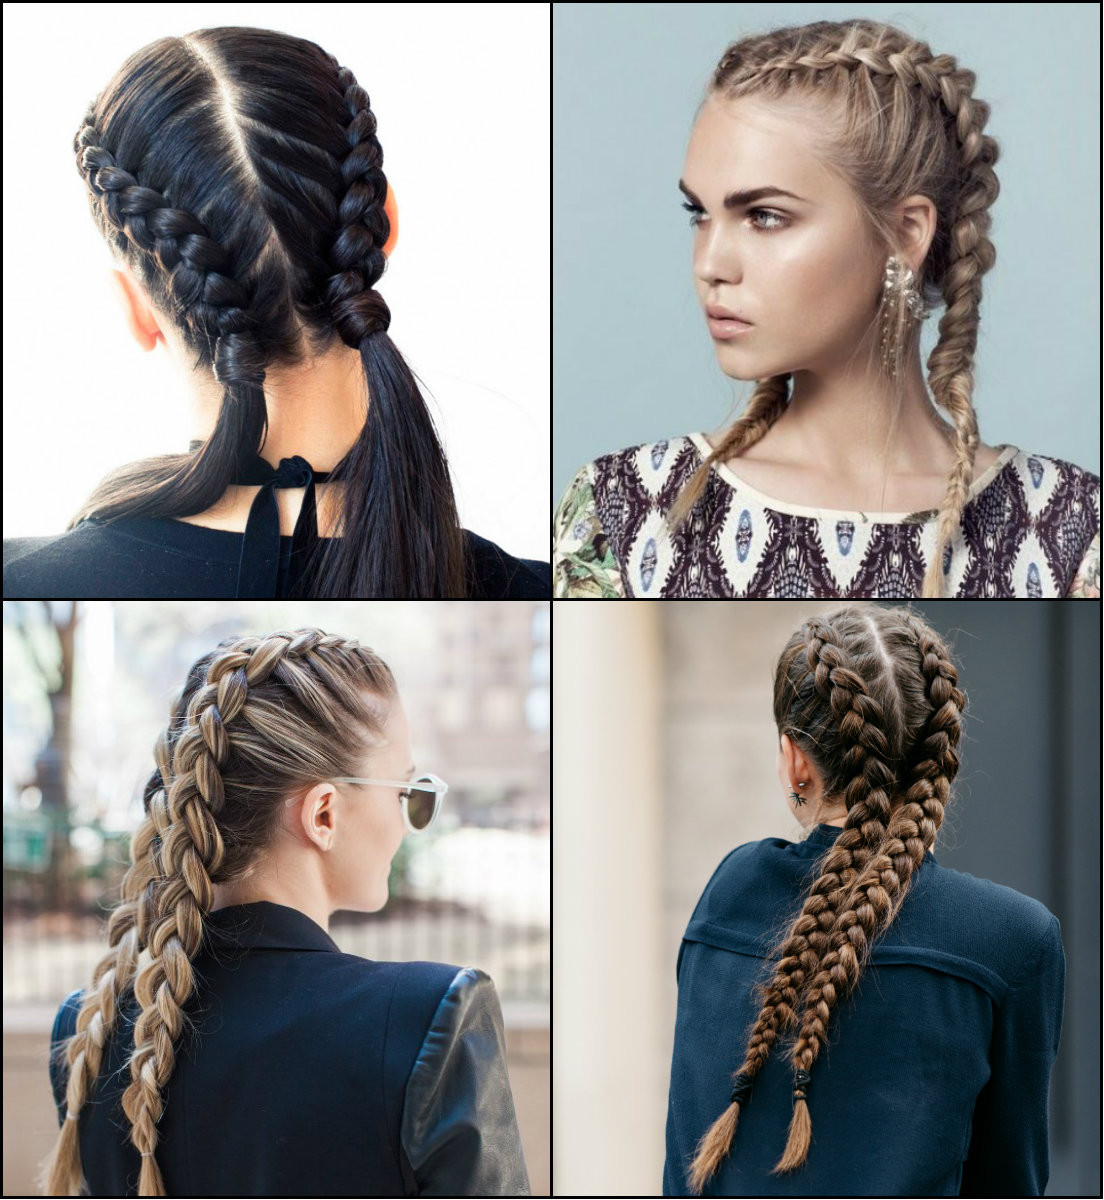 Double Braid Hairstyles  Volitional Double Braids Hairstyles To Dare Look Different